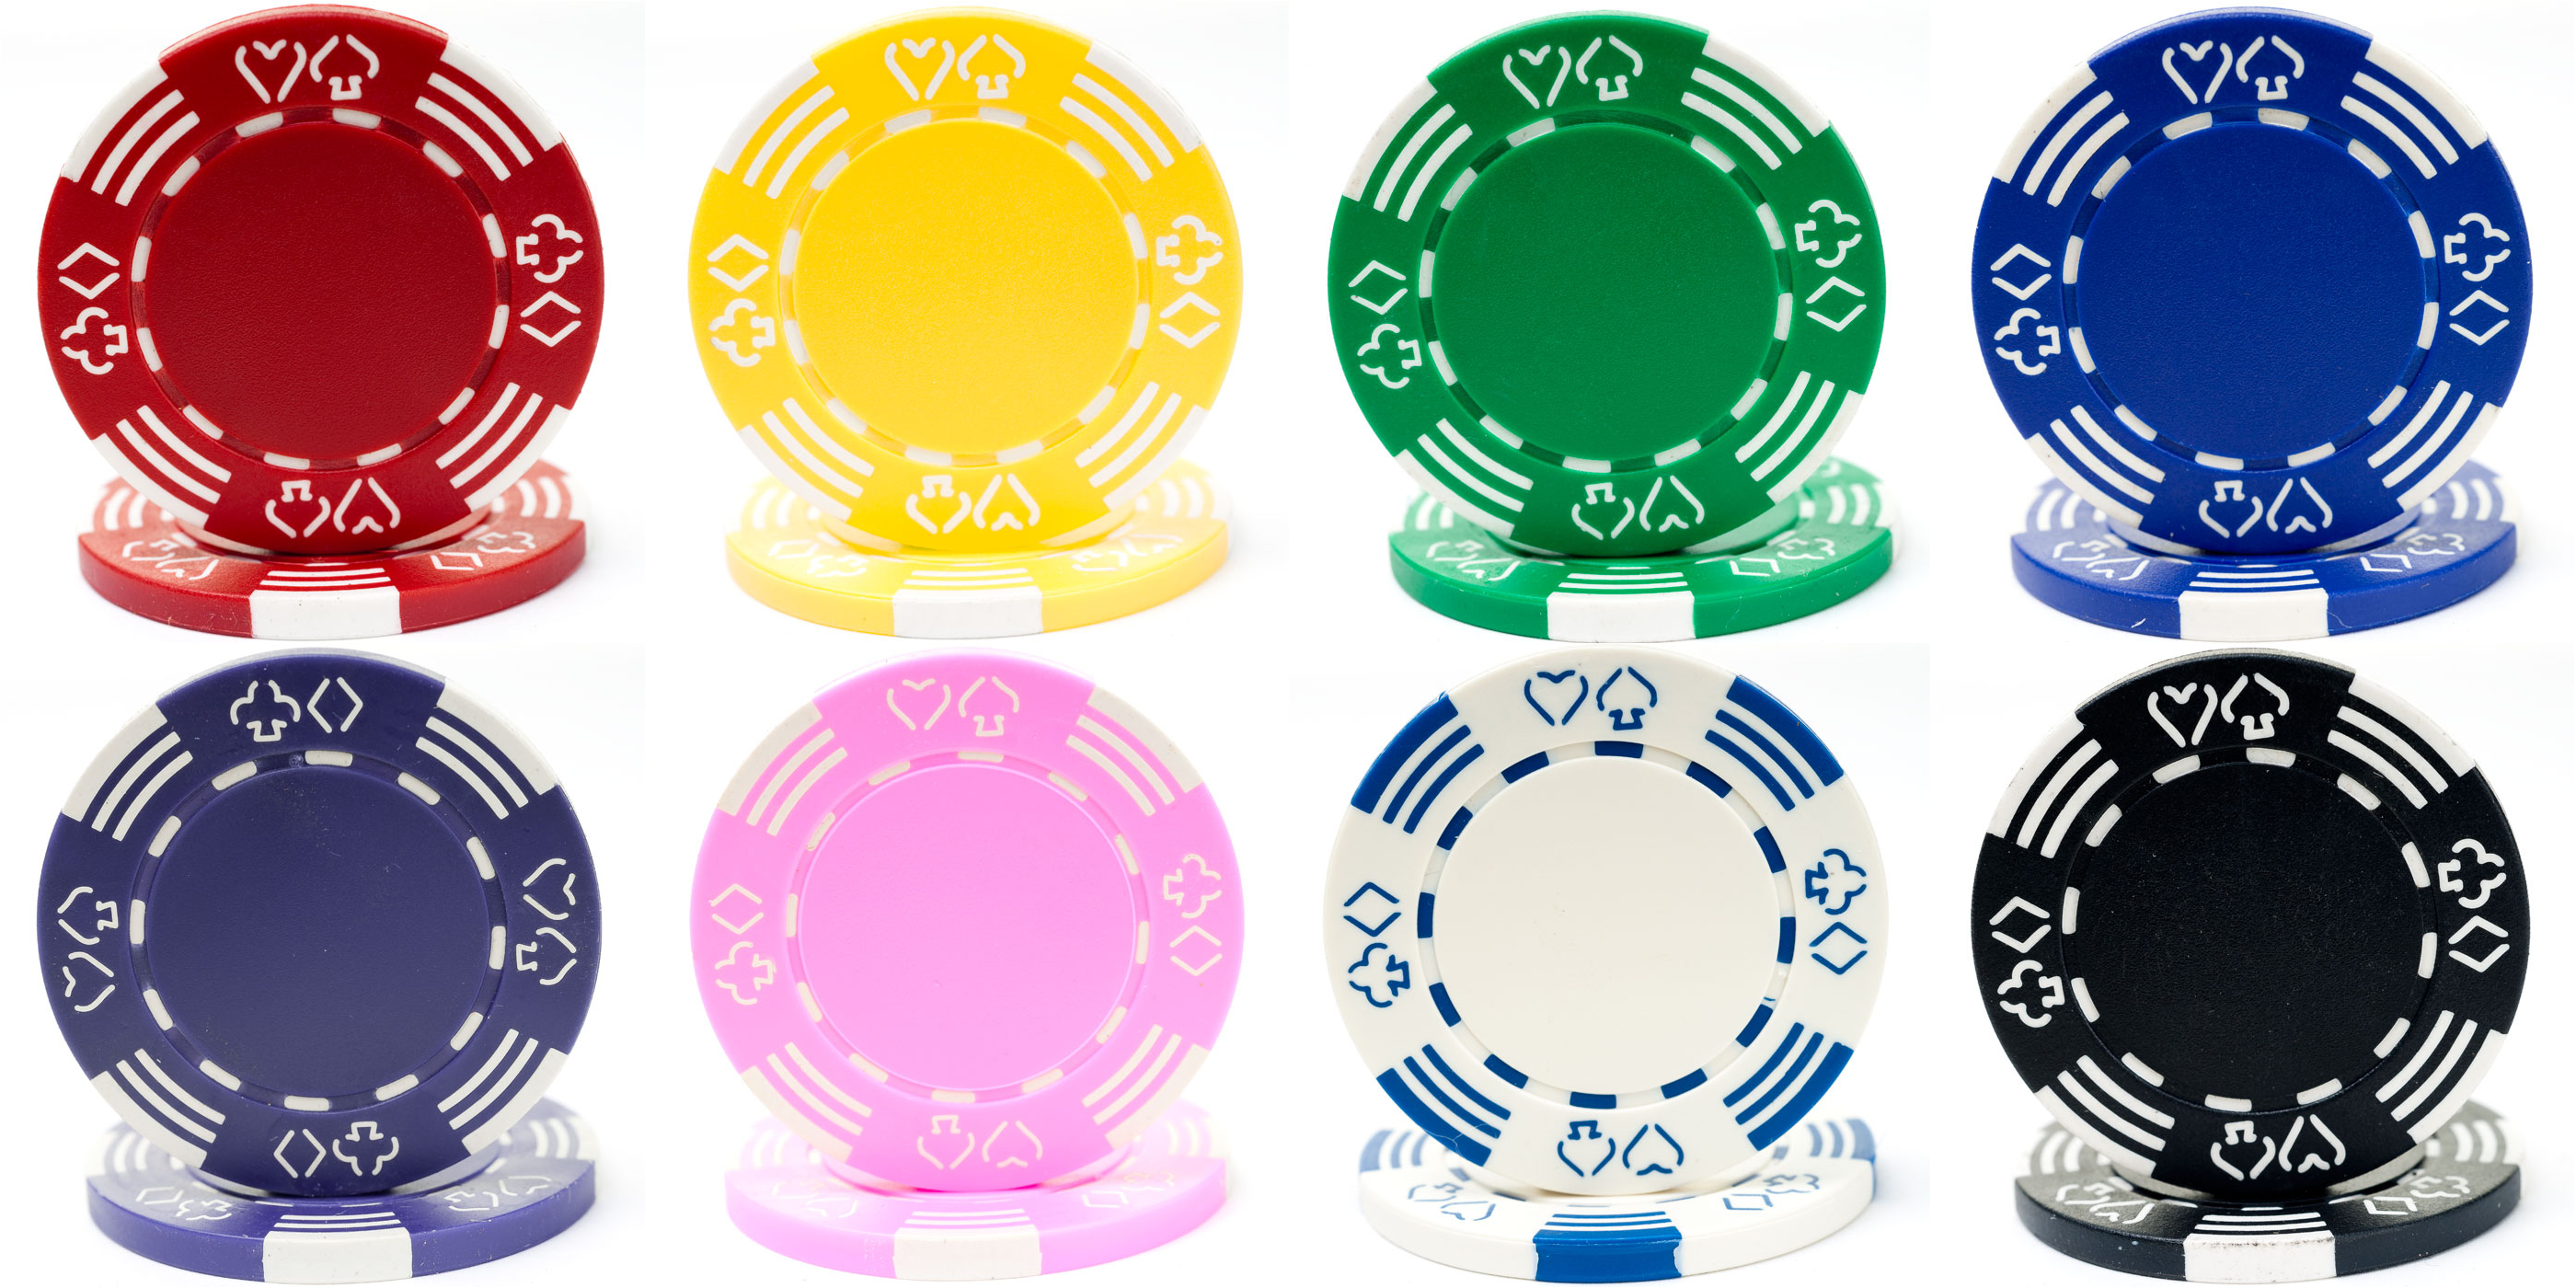 Personalized Royal Clay Poker Chips